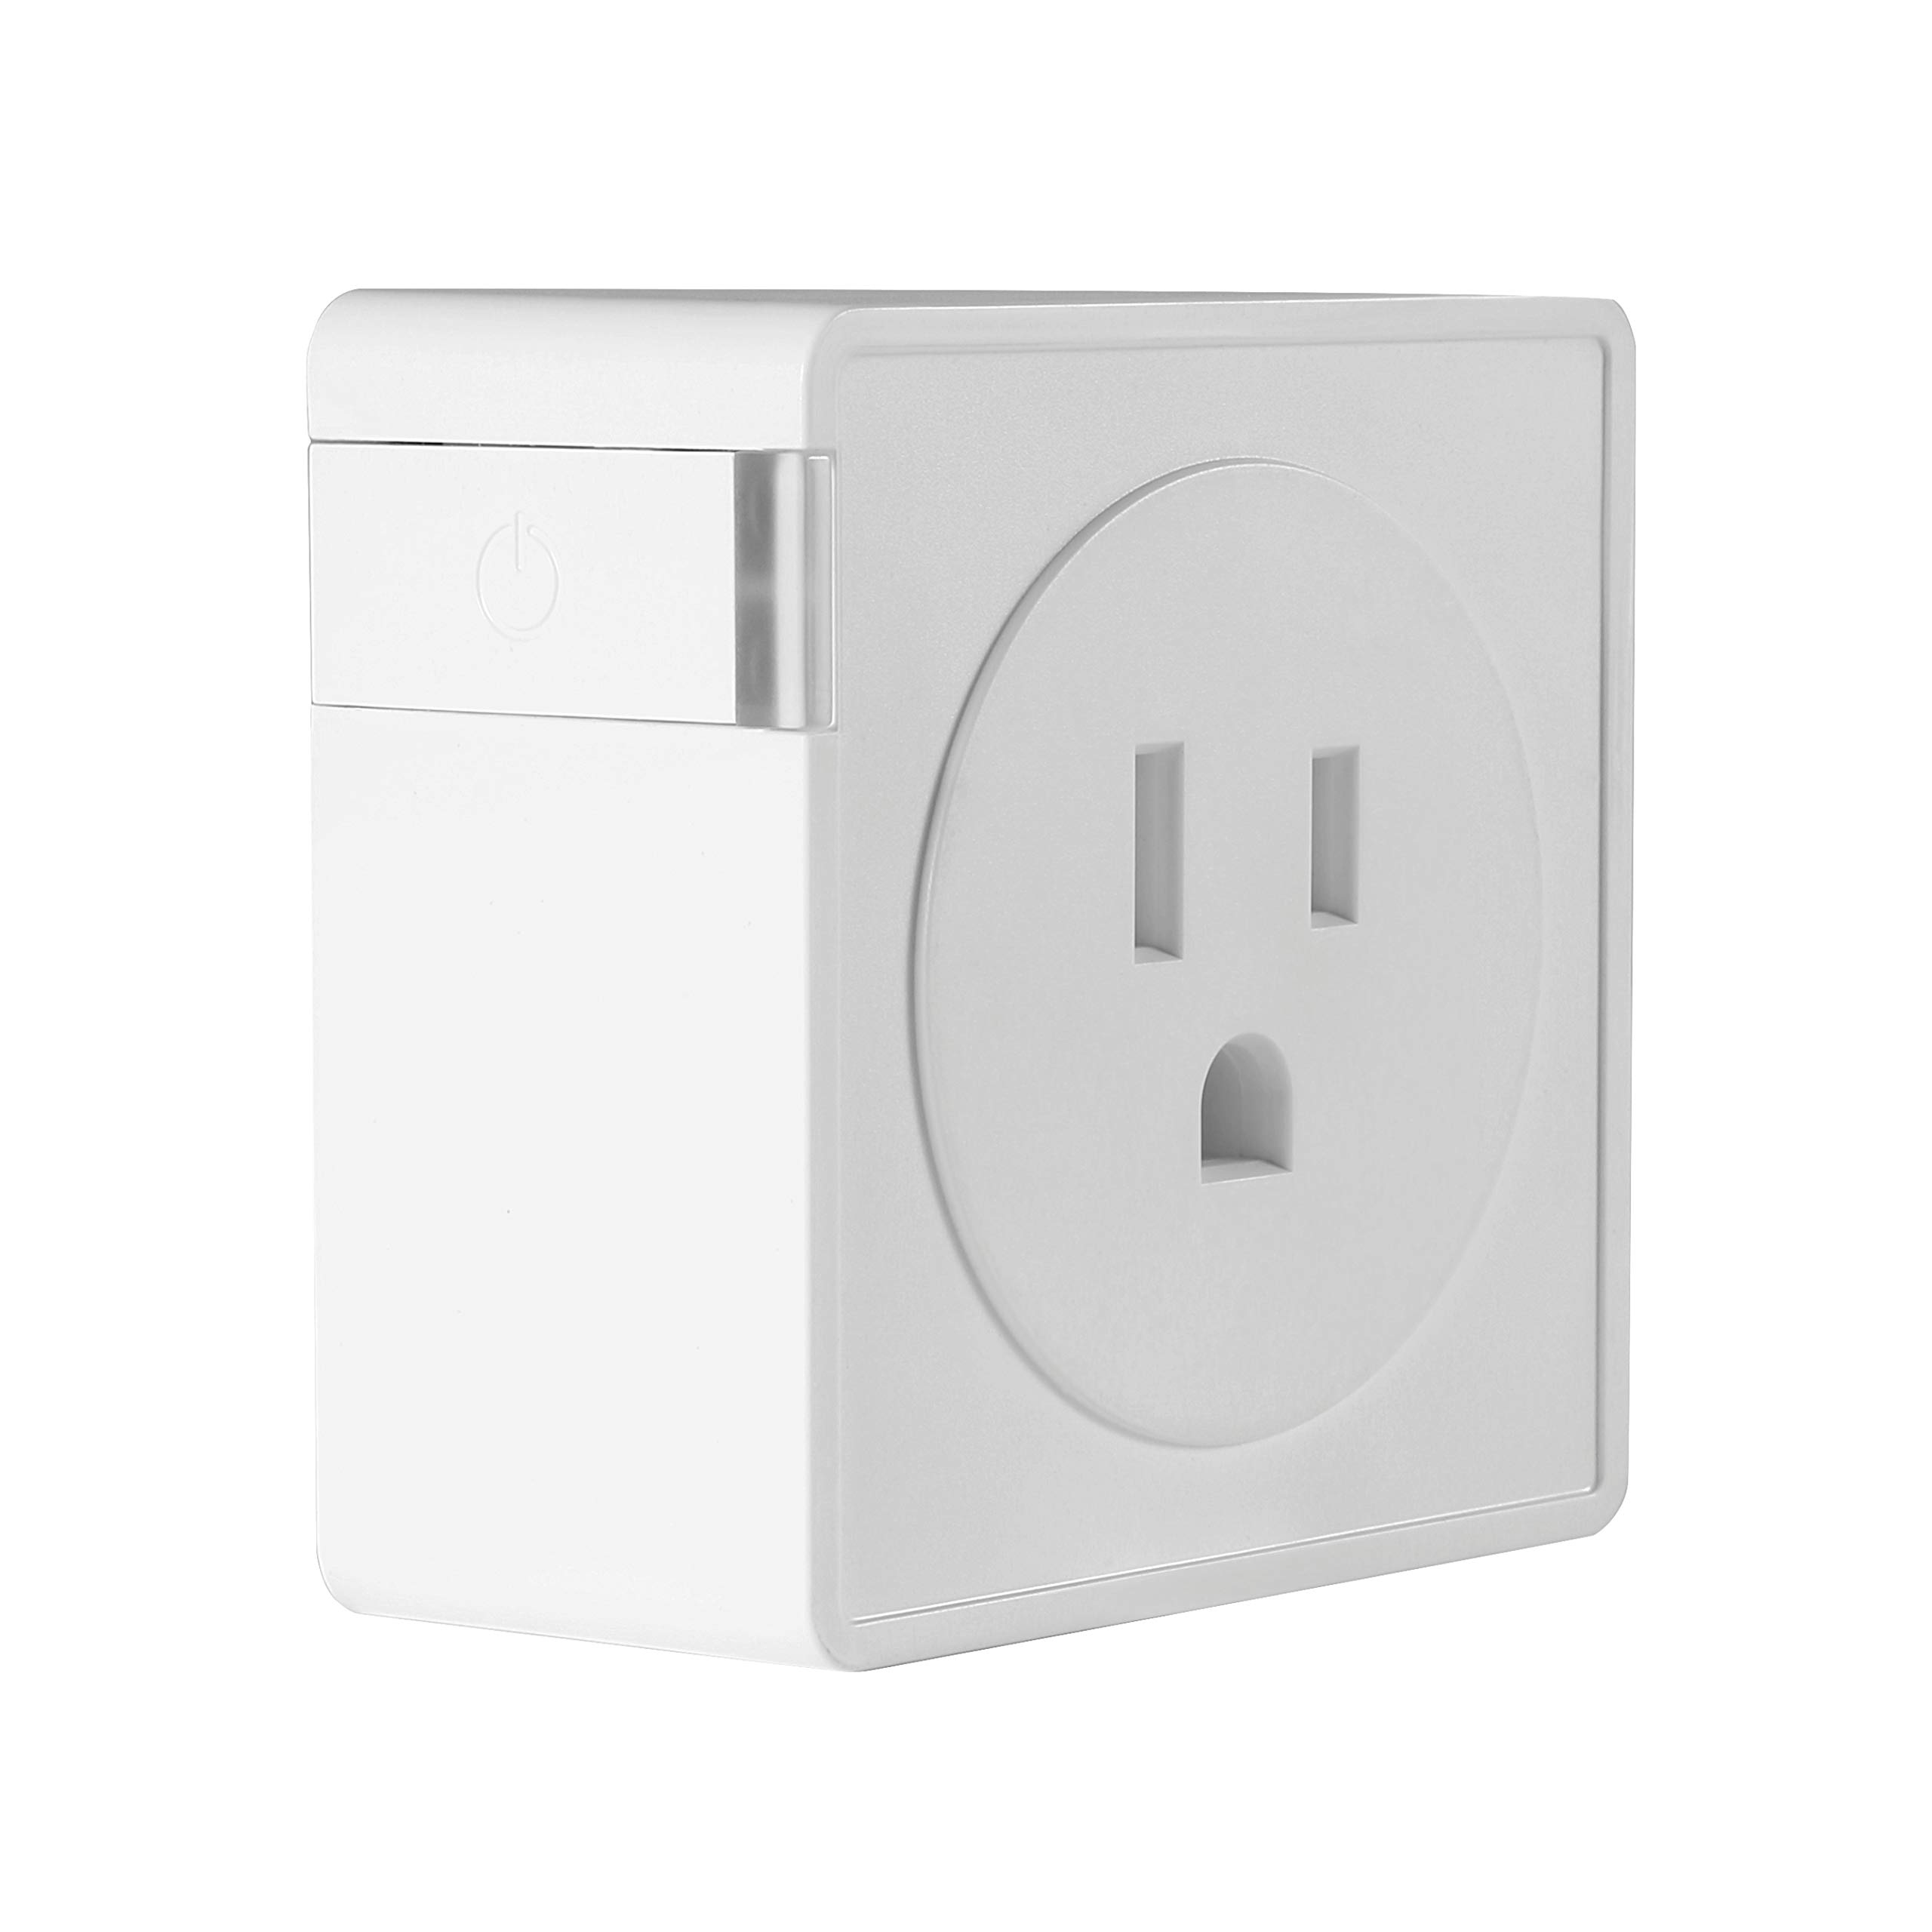 Sengled Smart Plug, Hub Required, Compatible with Alexa, Google Assistant and SmartThings